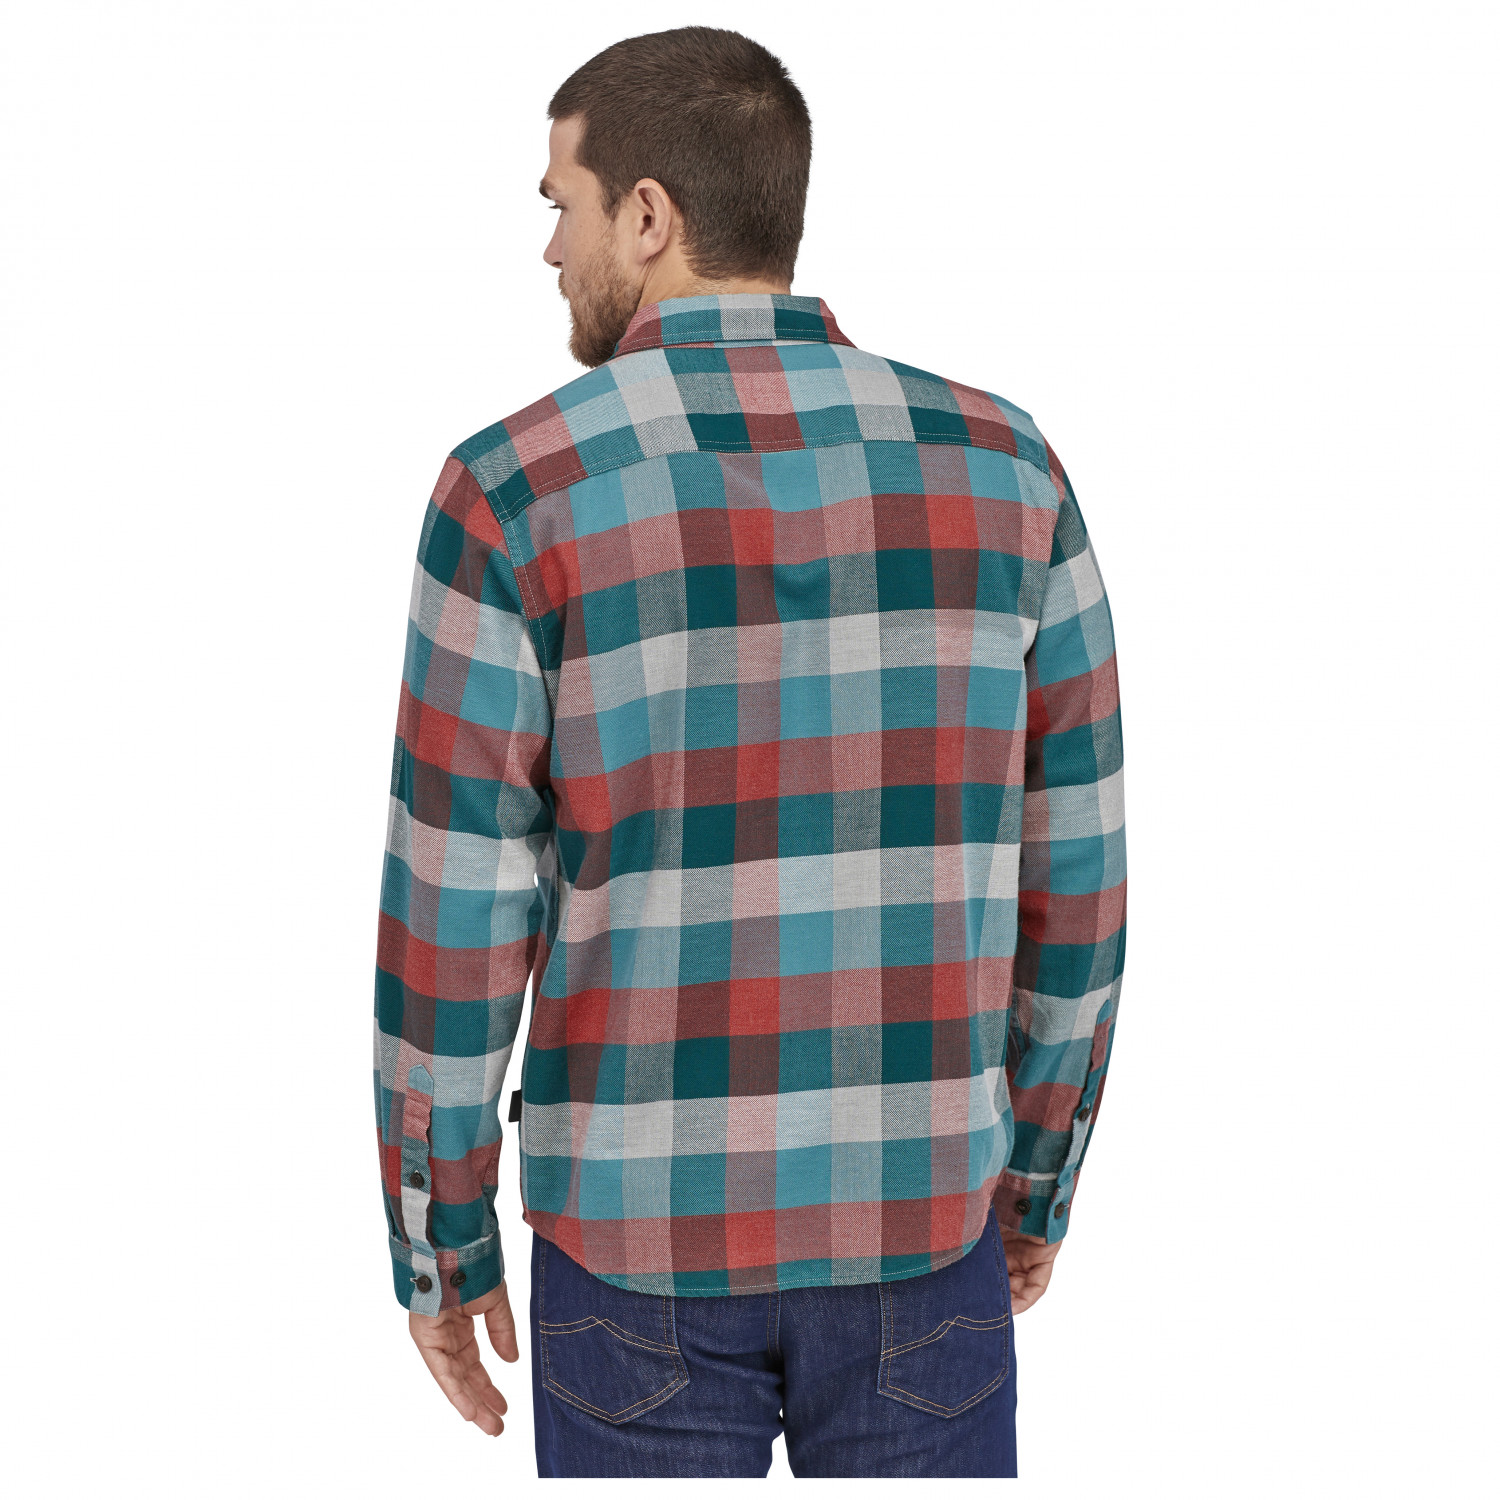 4f8a6fea610 ... Patagonia - L S LW Fjord Flannel Shirt - Chemise ...